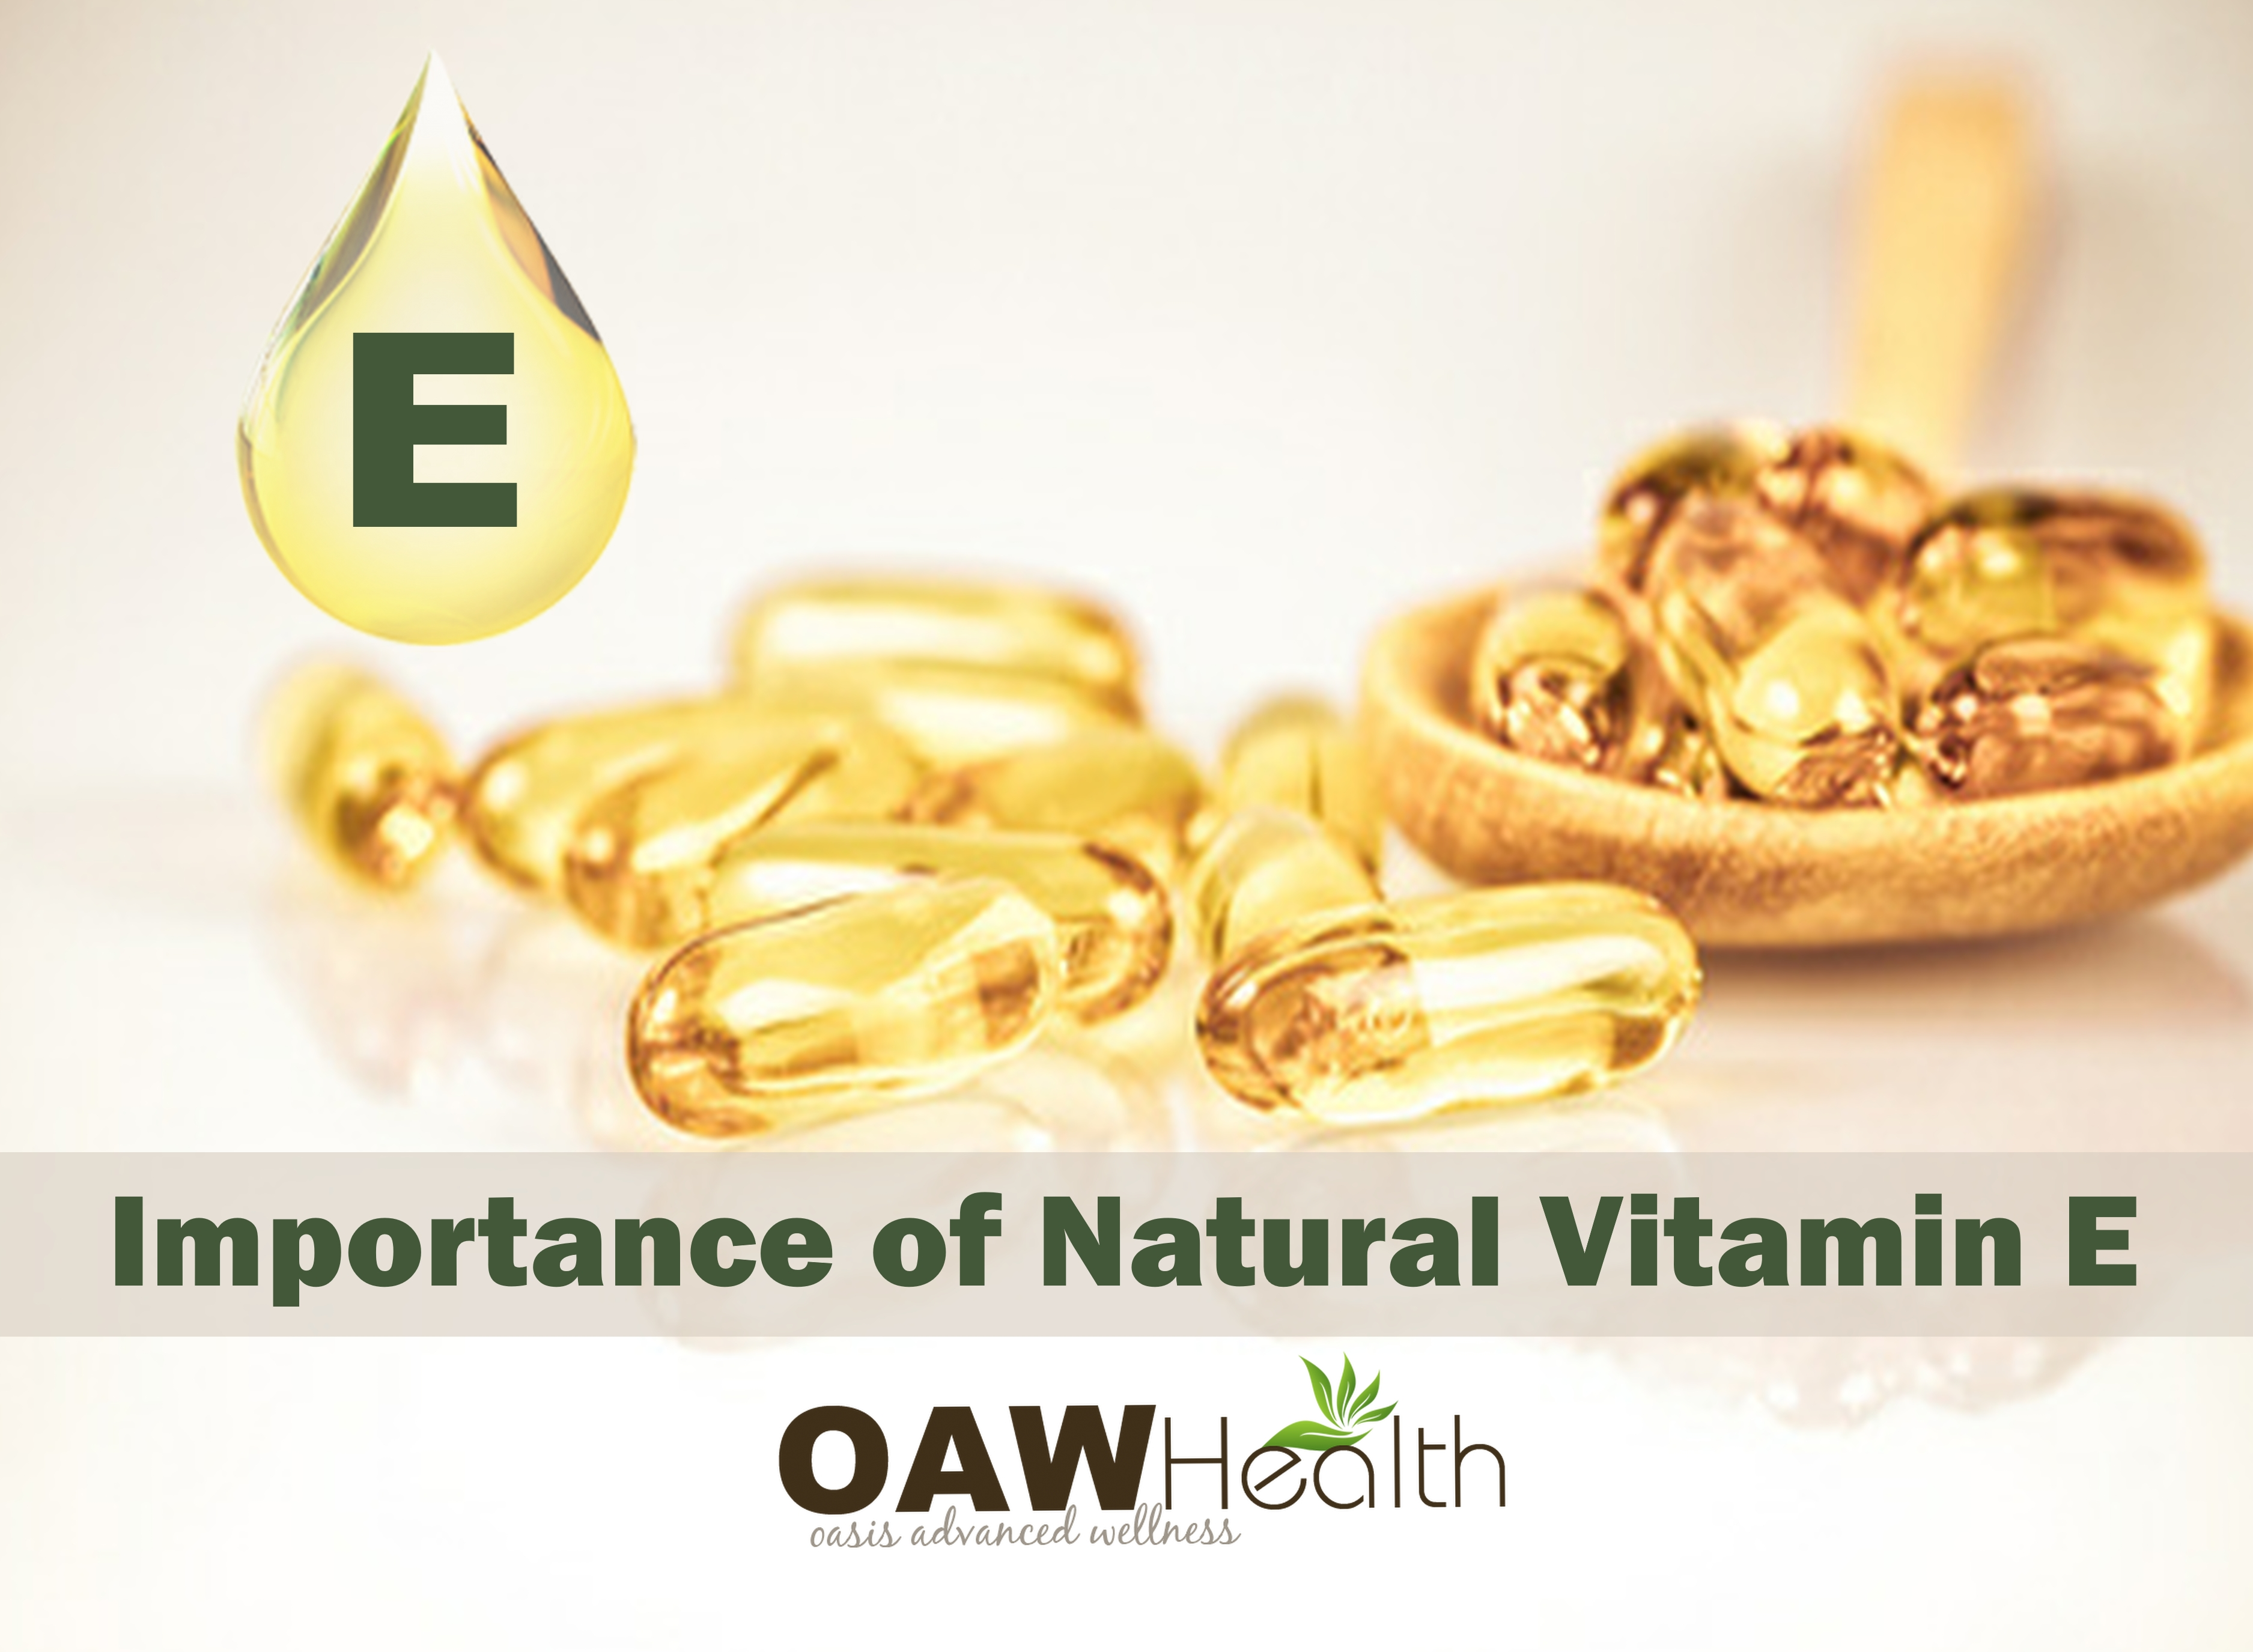 Importance of Natural Vitamin E